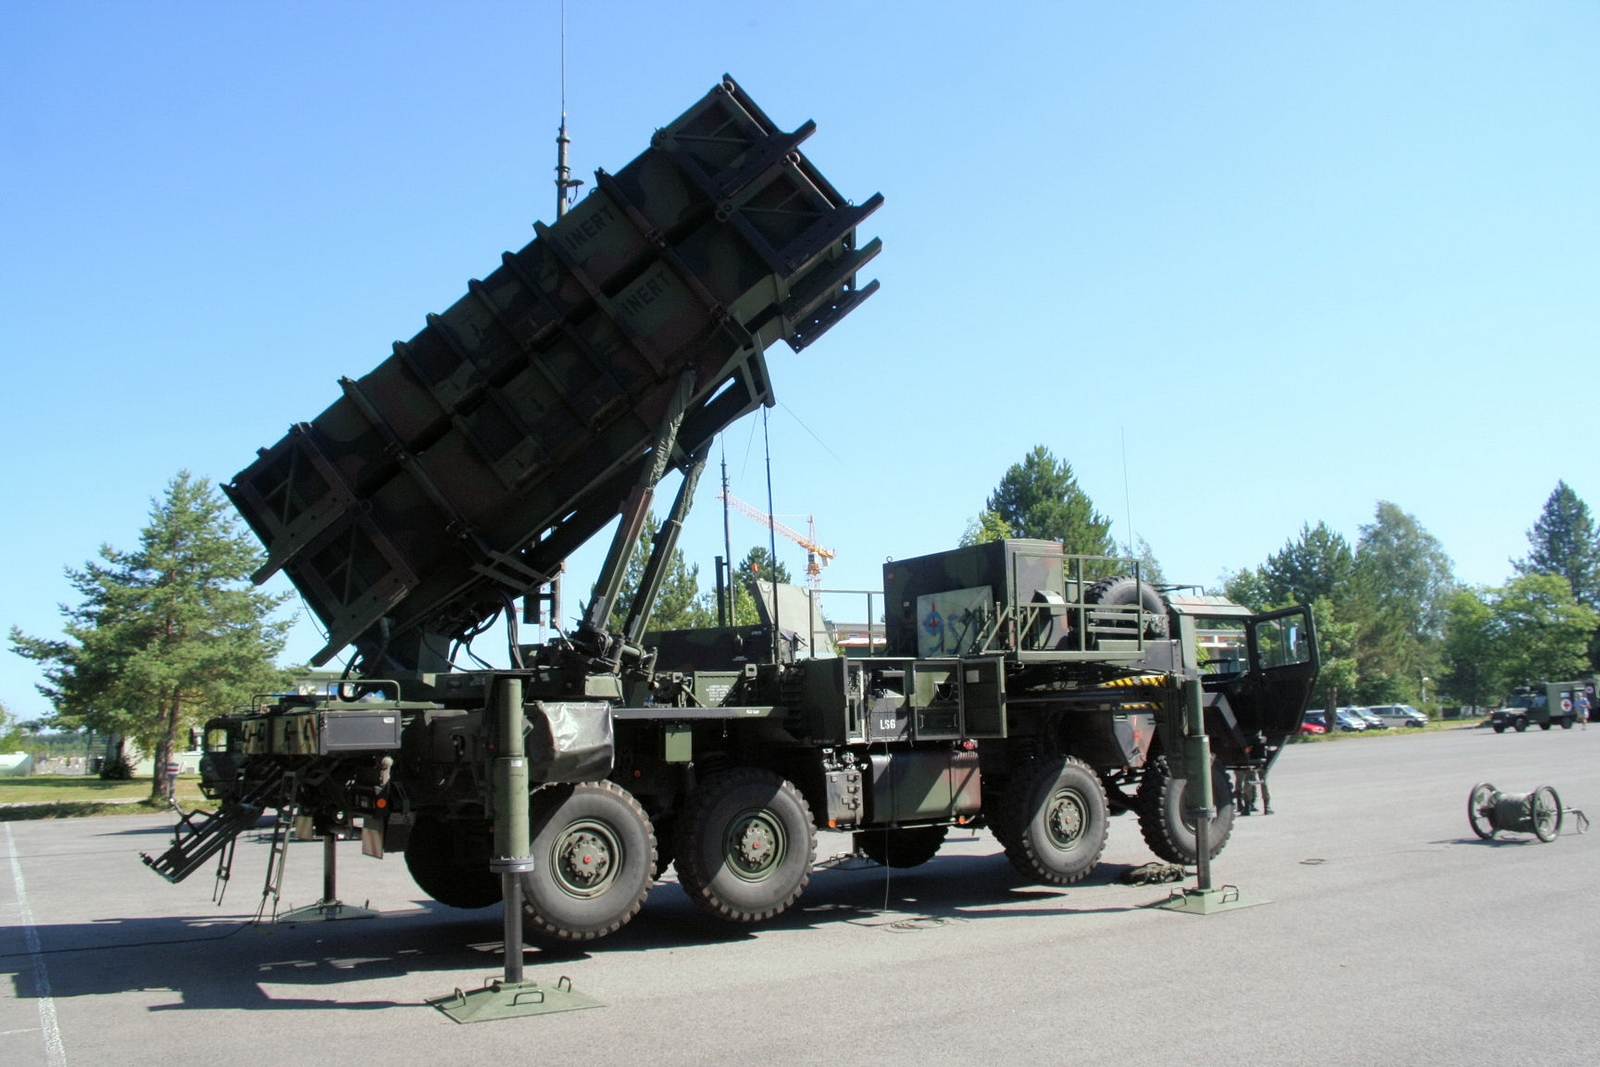 Patriot Missile Batteri